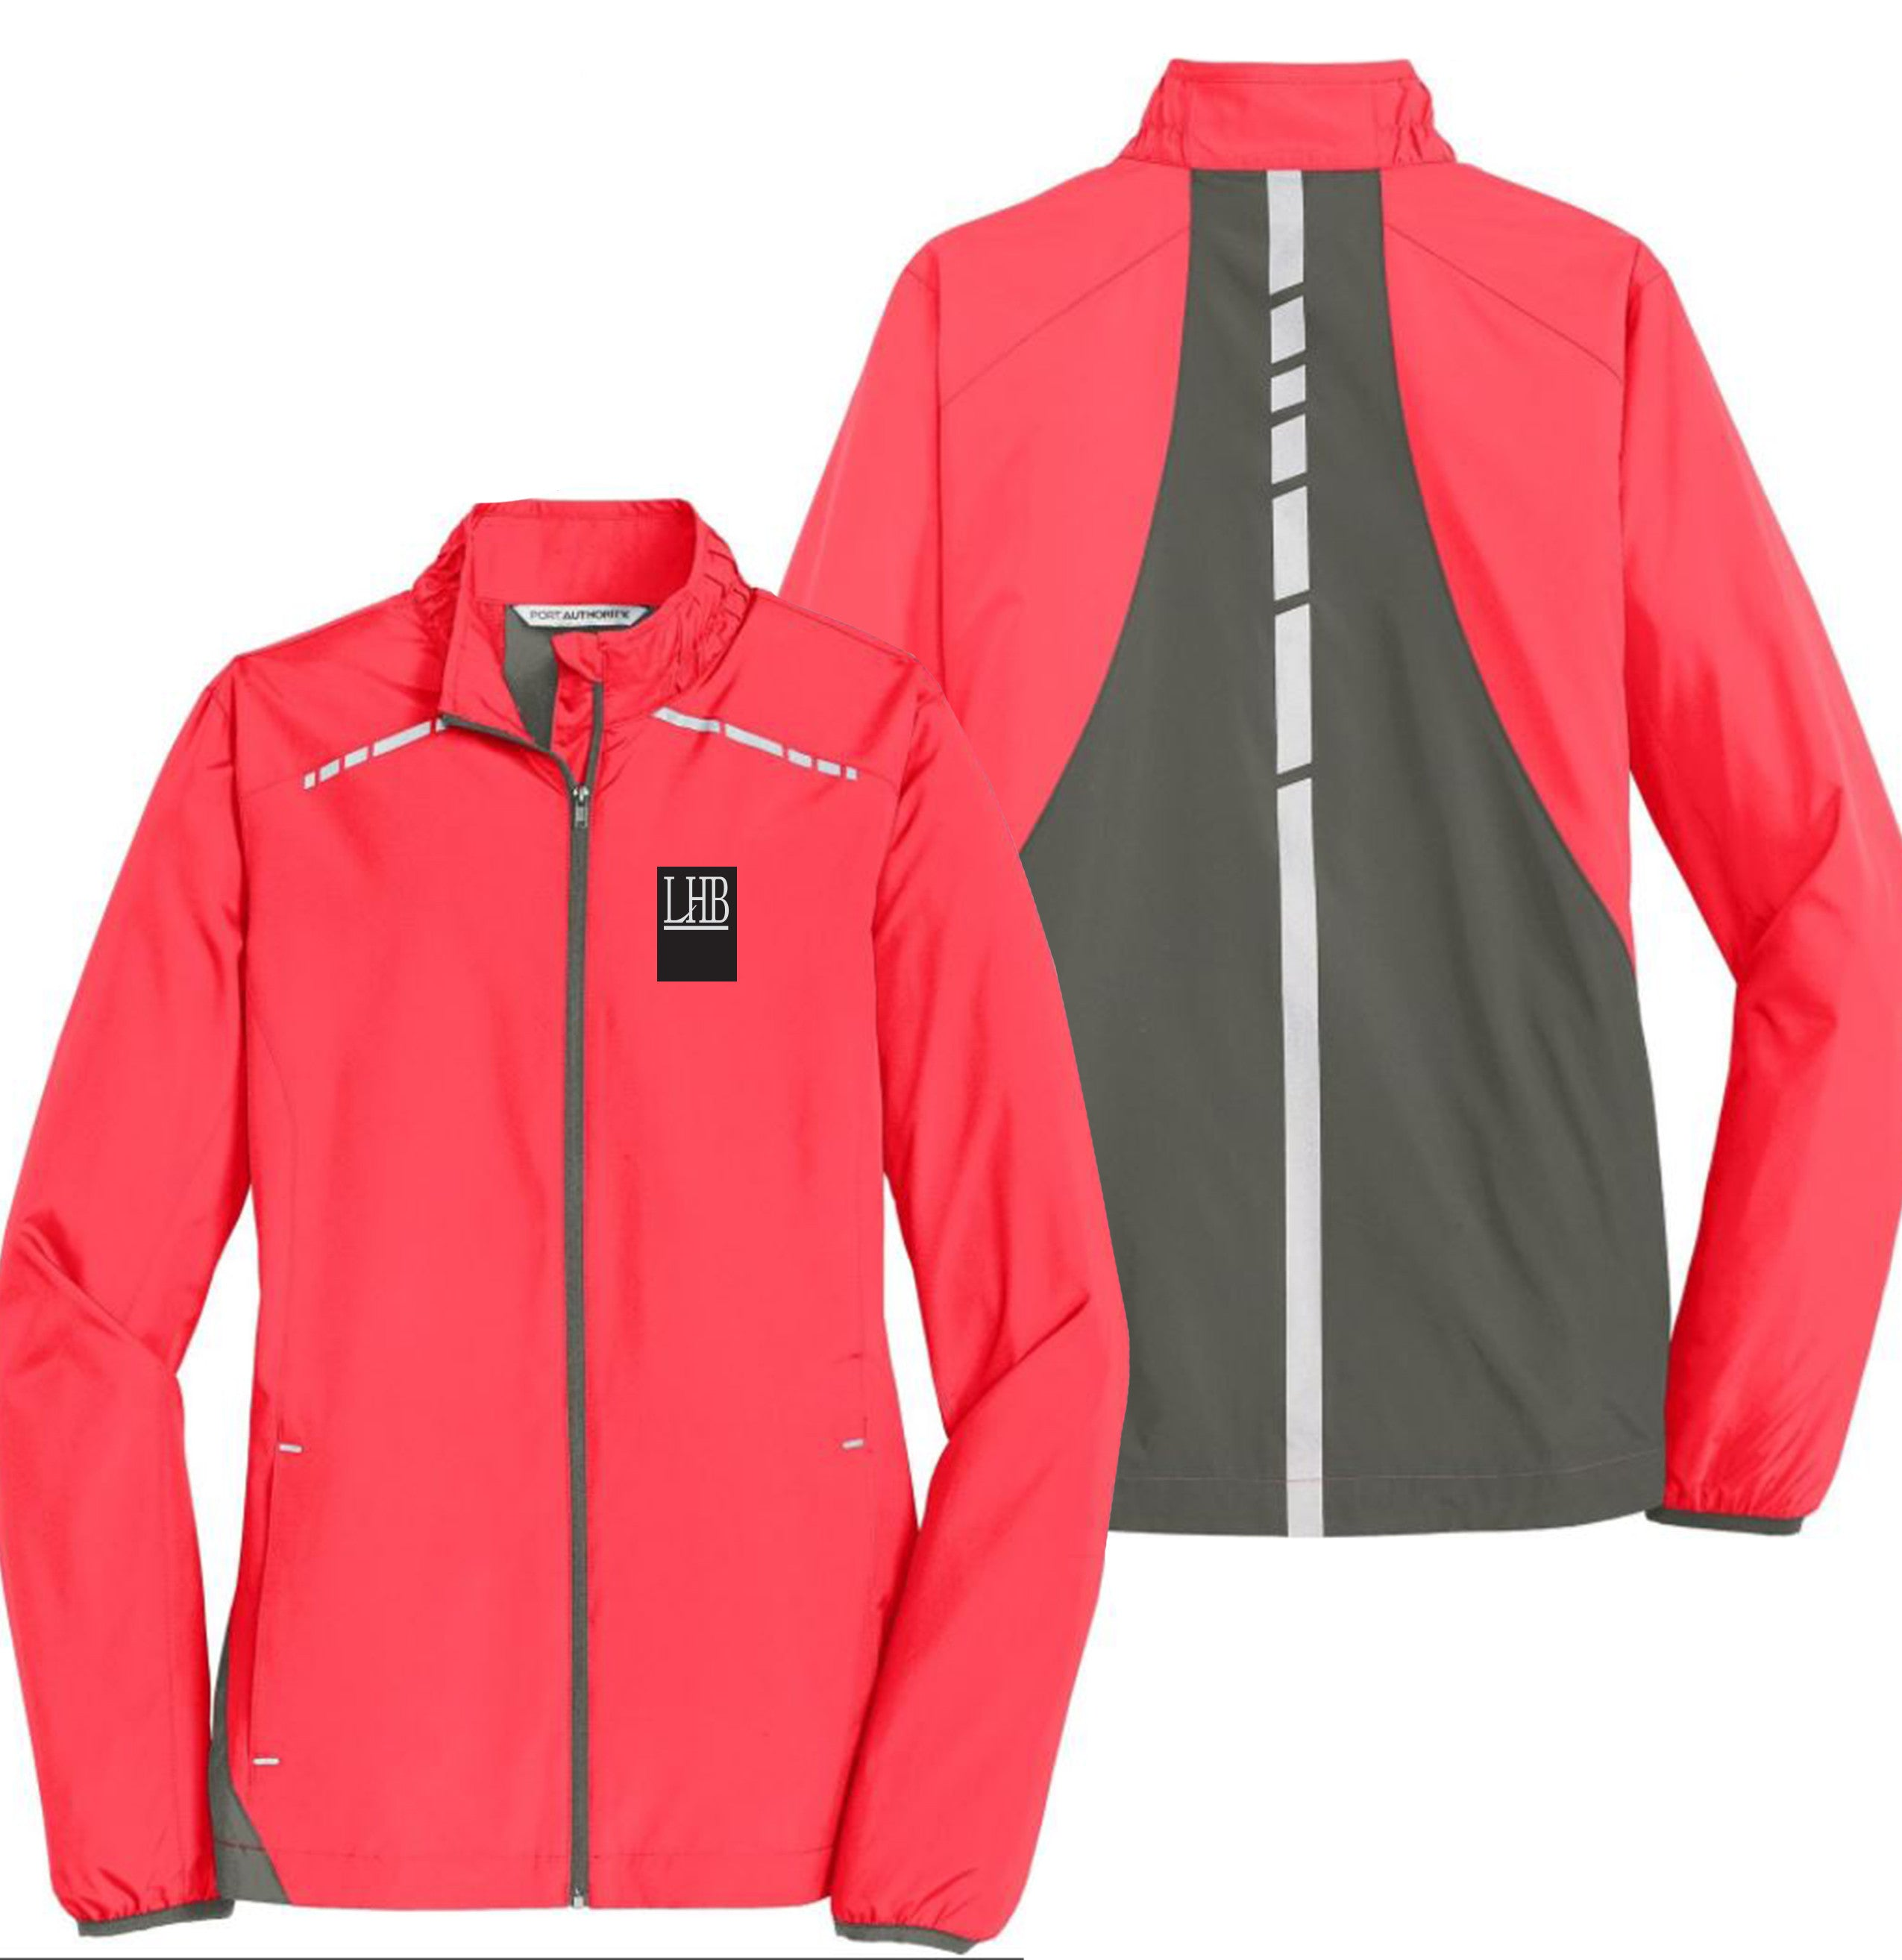 Port Authority® Zephyr Reflective Hit Full-Zip Jacket - Mens/Ladies